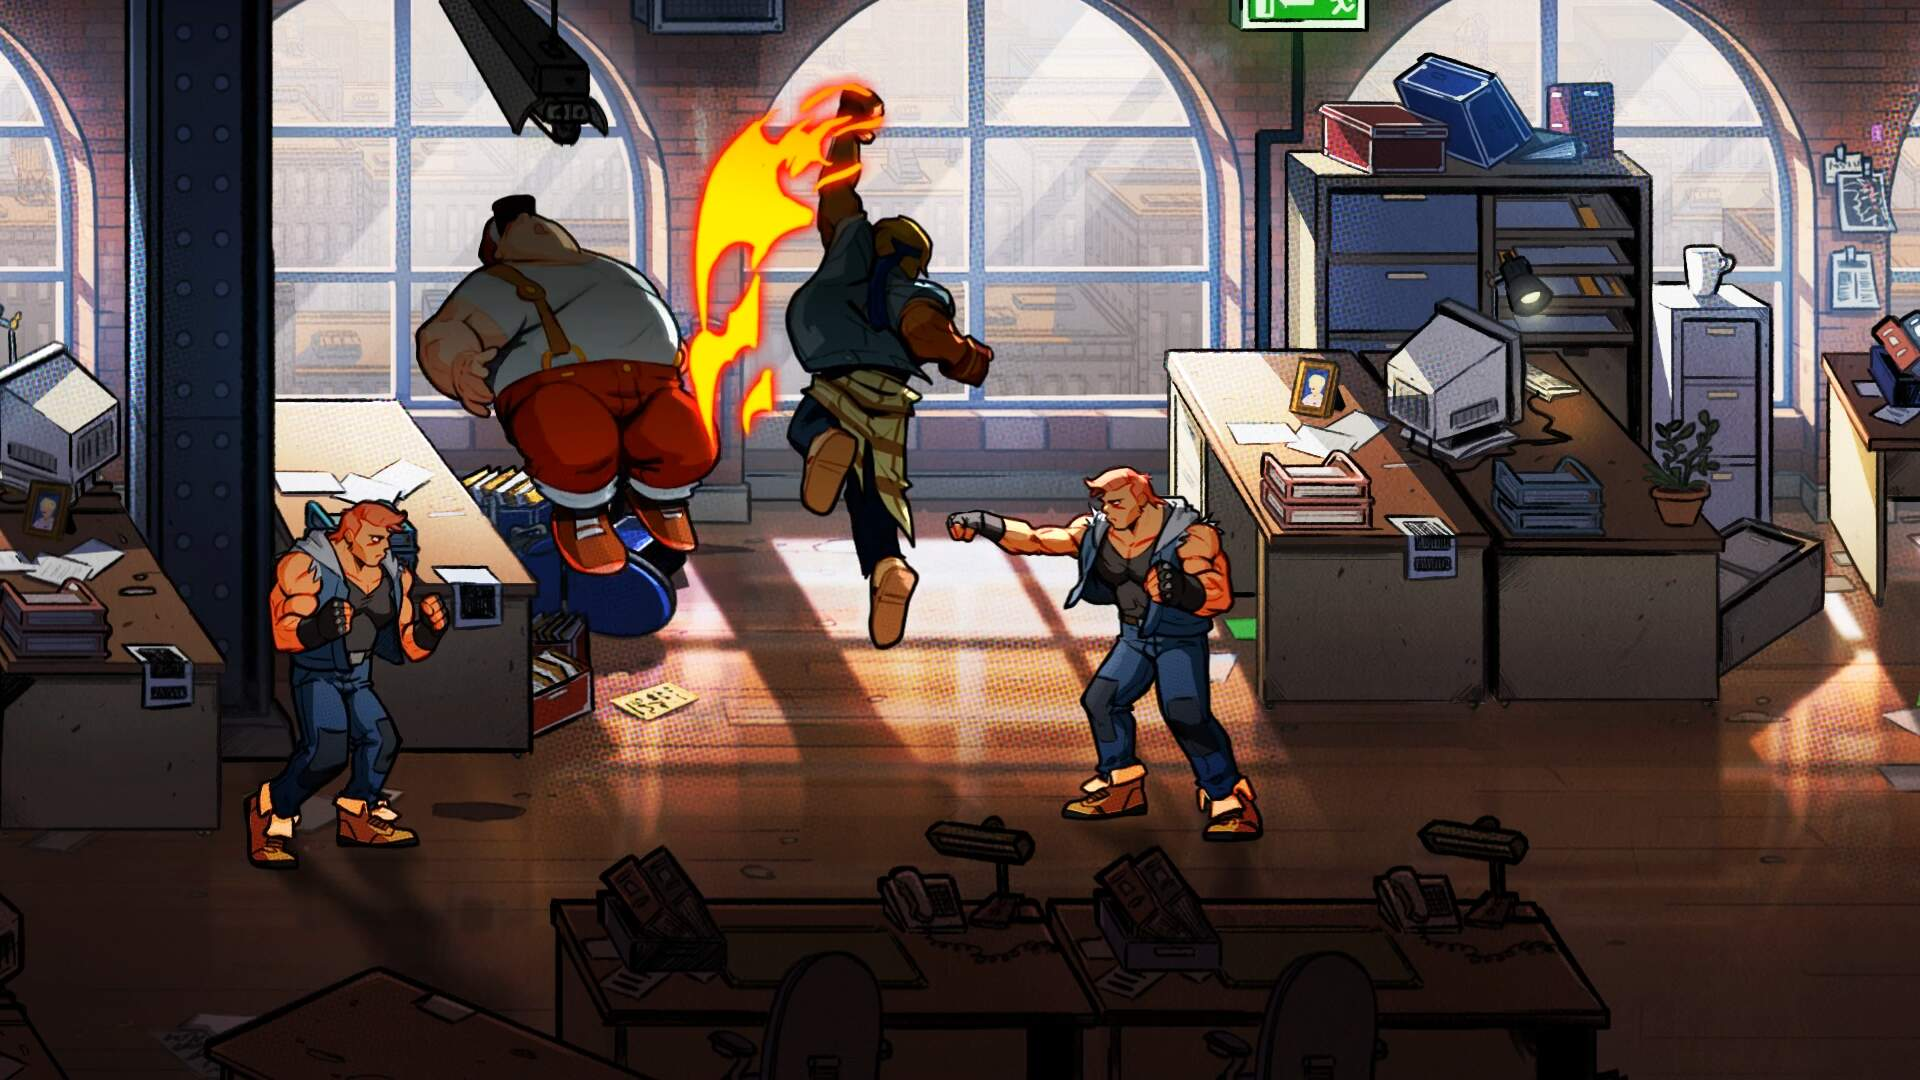 Dotemu Says More Streets of Rage 4 Content Is on the Way